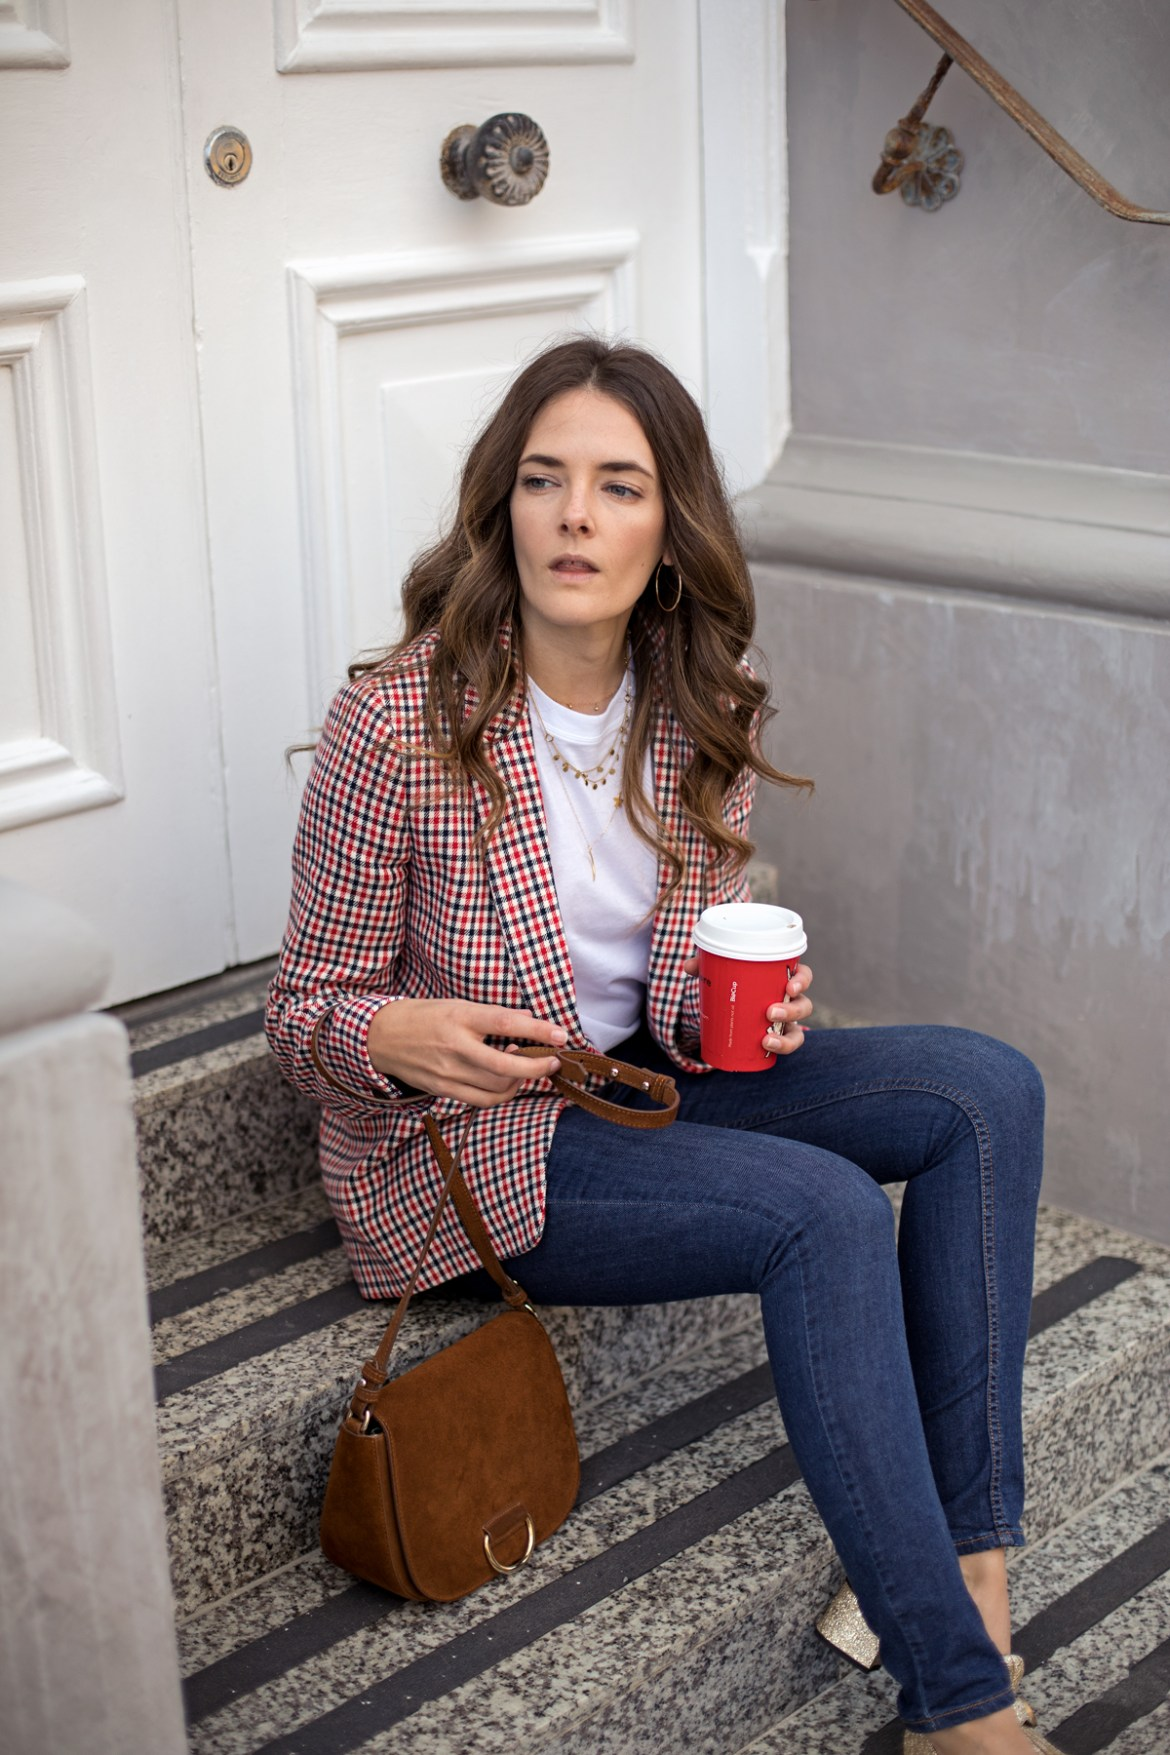 check blazer outfit idea Boden Bramley check blazer worn by Australian fashion blogger Jenelle Witty of Inspiring Wit with jeans and white t-shirt